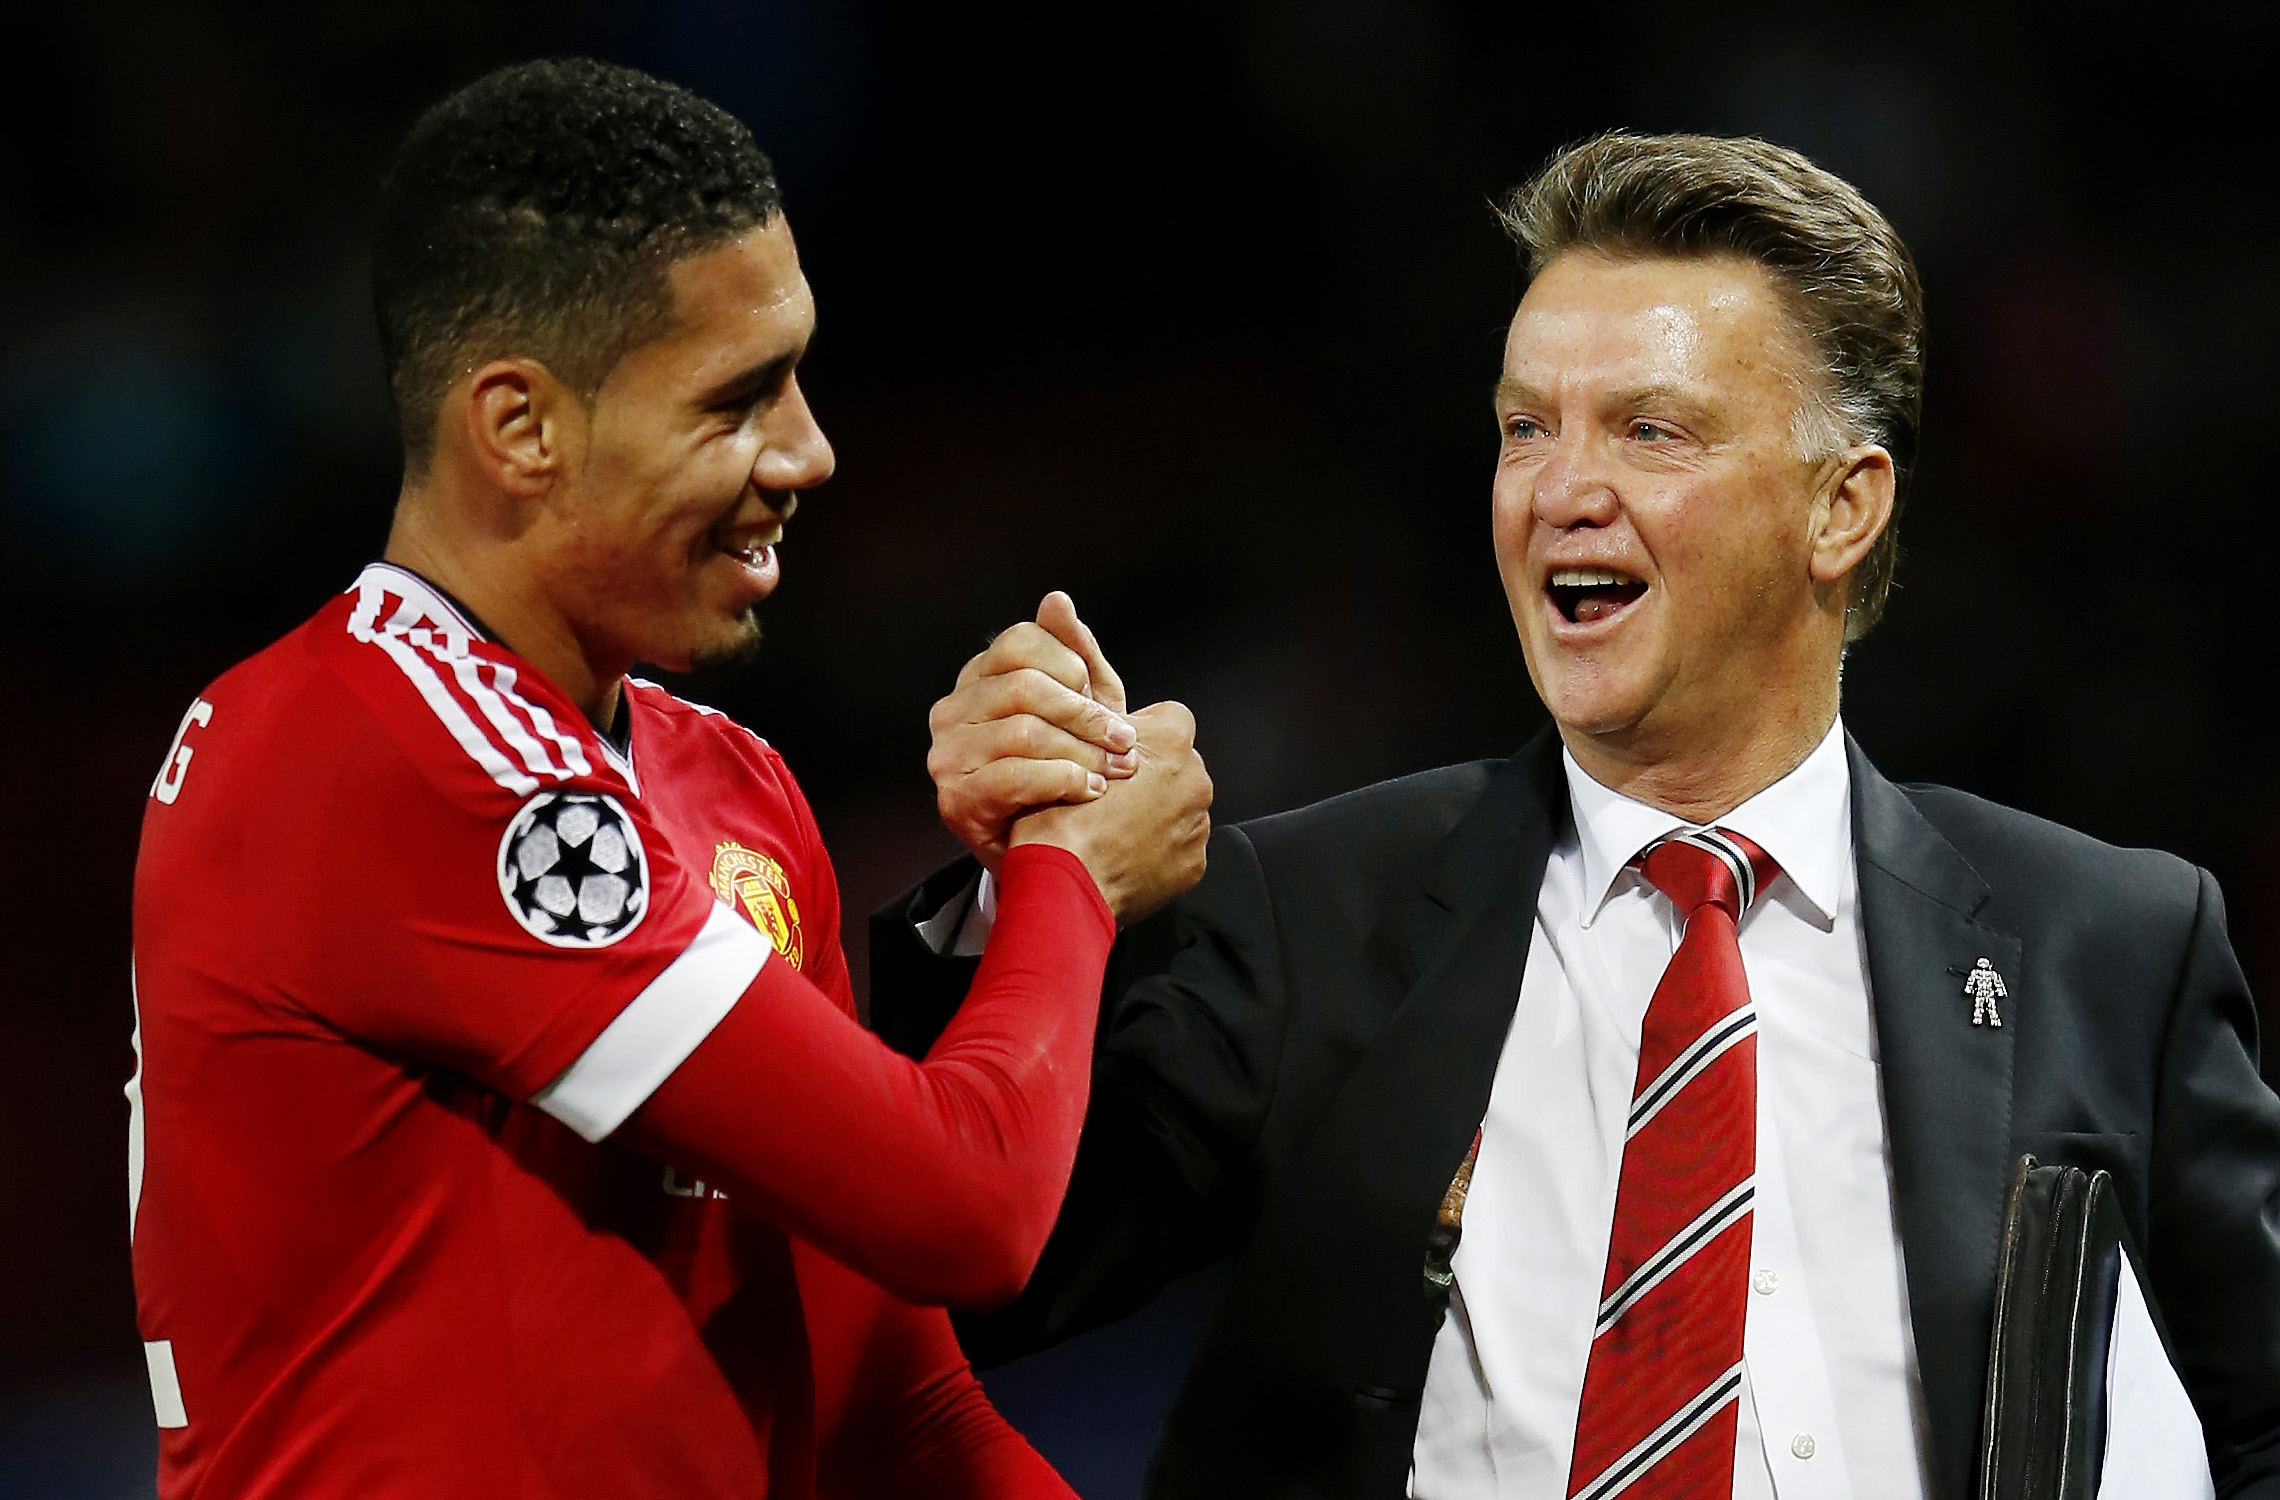 Football - Manchester United v VfL Wolfsburg - UEFA Champions League Group Stage - Group B - Old Trafford, Manchester, England - 30/9/15nManchester United's Chris Smalling celebrates with manager Louis van Gaal after the gamenAction Images via Reuters / Lee SmithnLivepicnEDITORIAL USE ONLY.